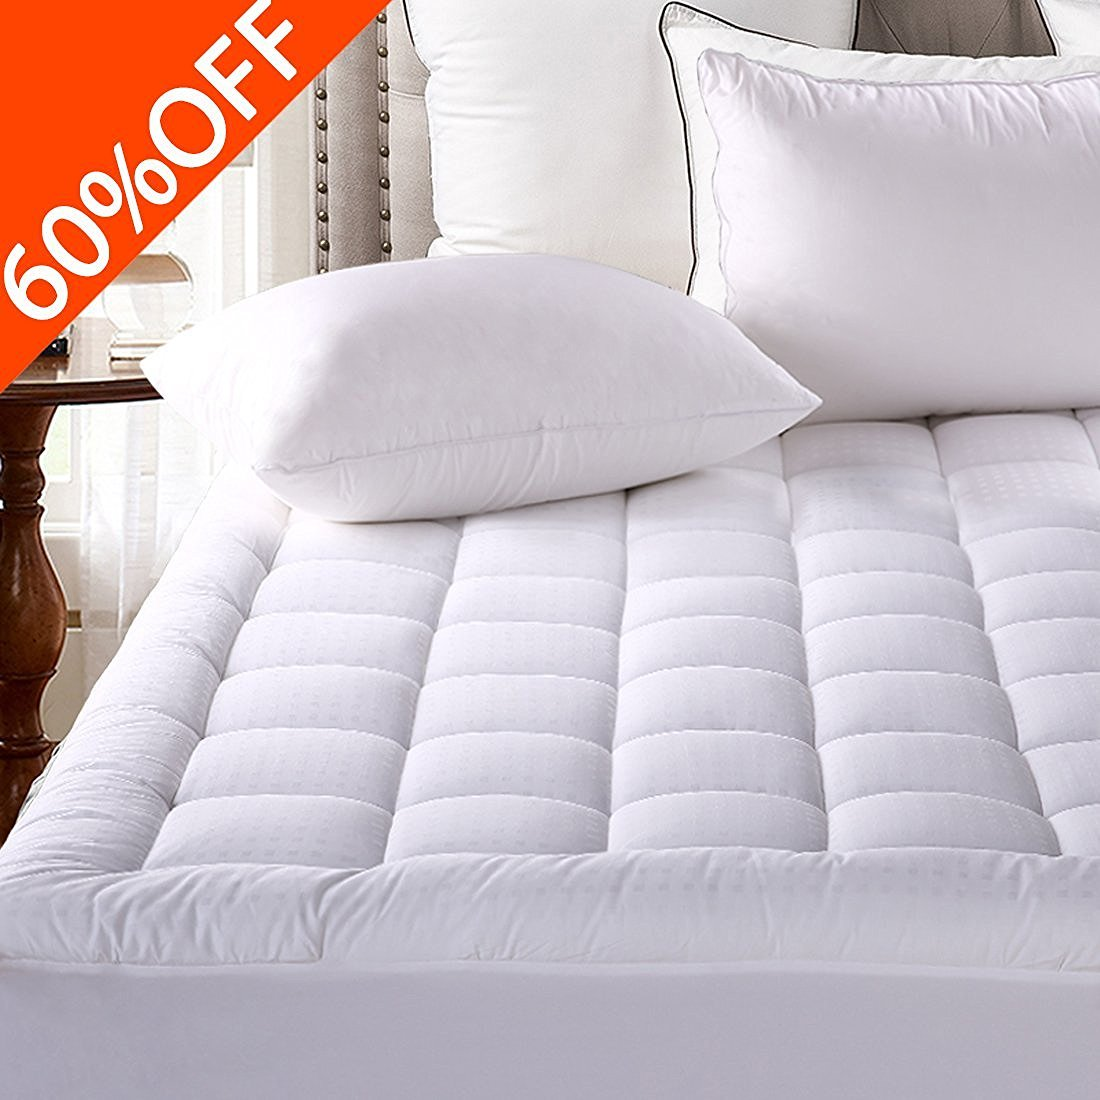 Fitted Quilted Mattress Pad Co...